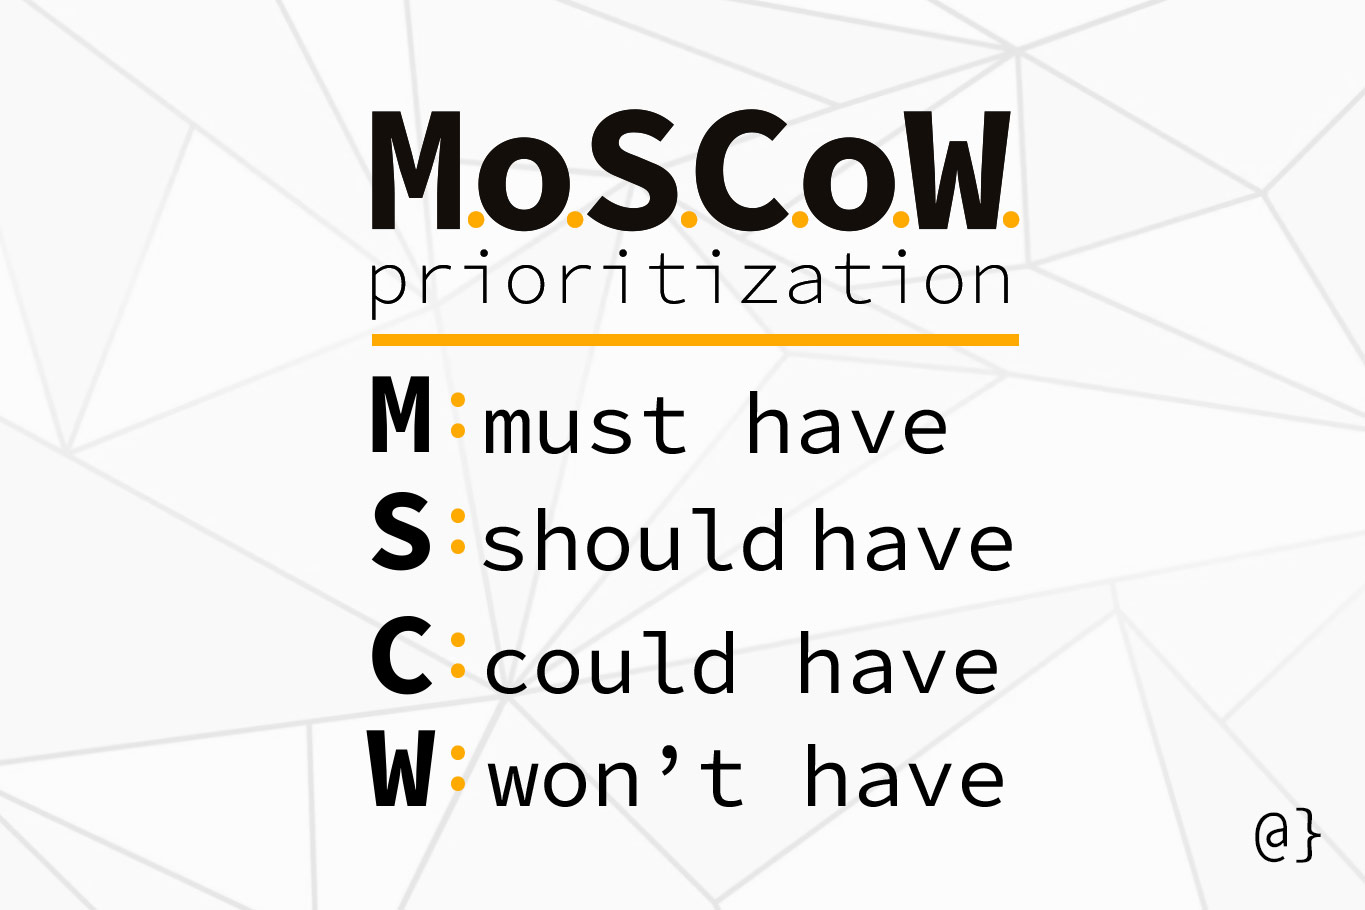 moscow prioritization